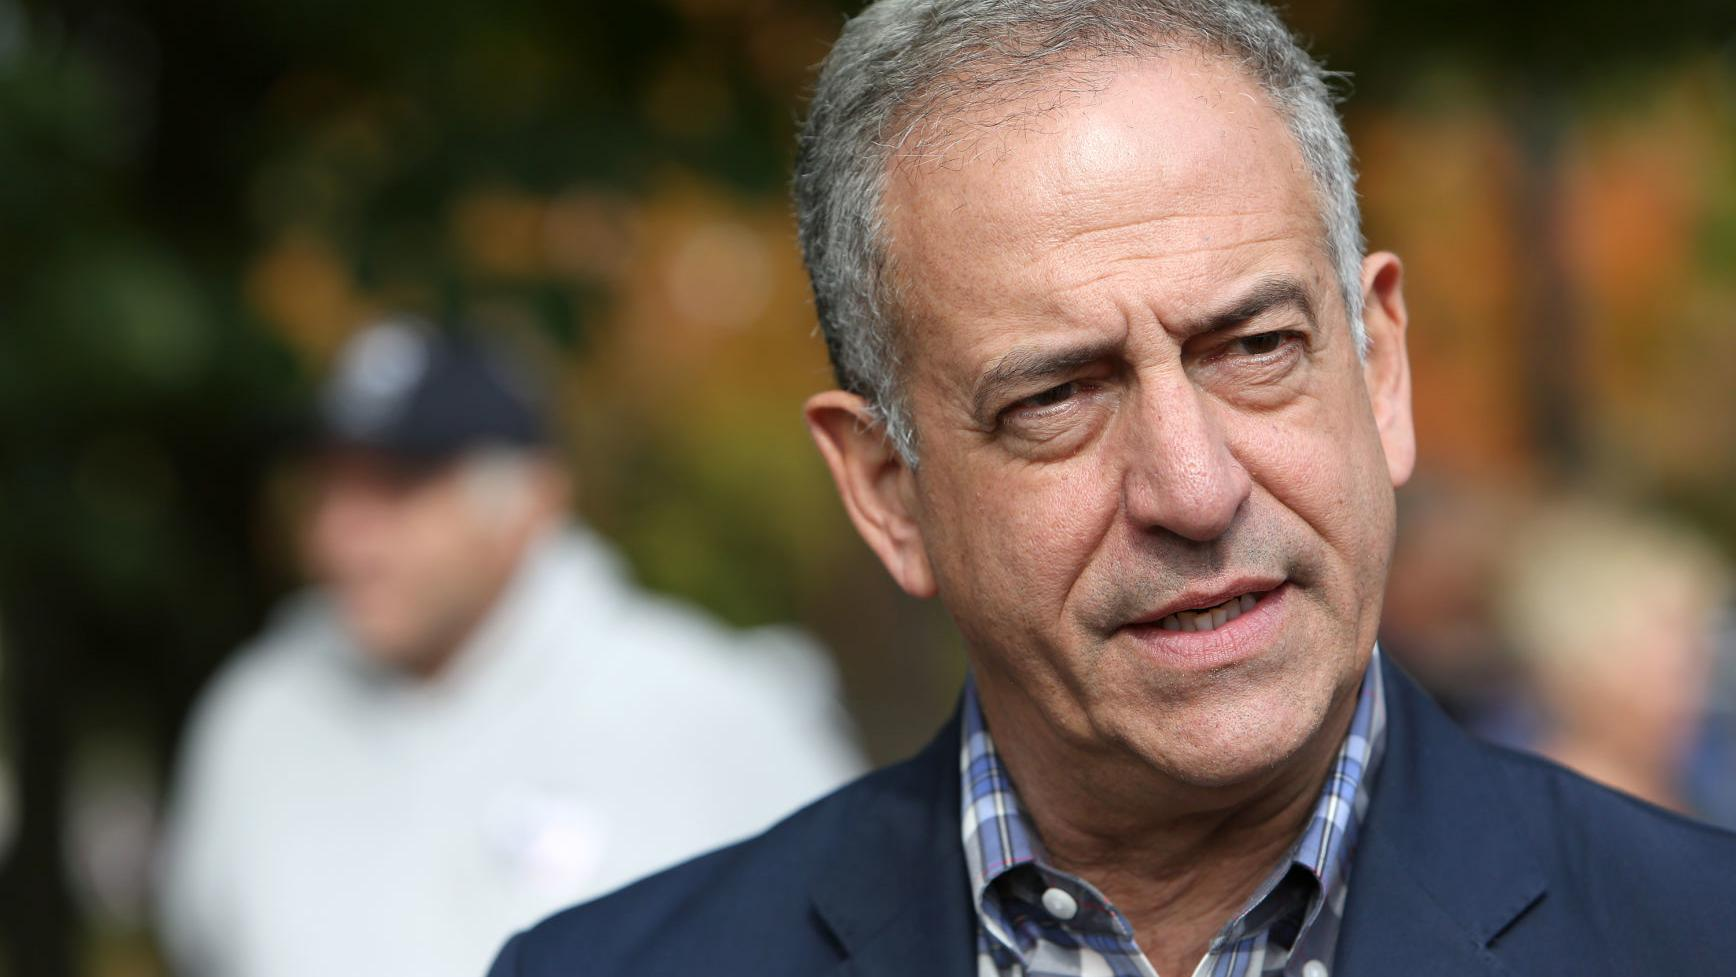 Russ Feingold to work with group promoting global biodiversity